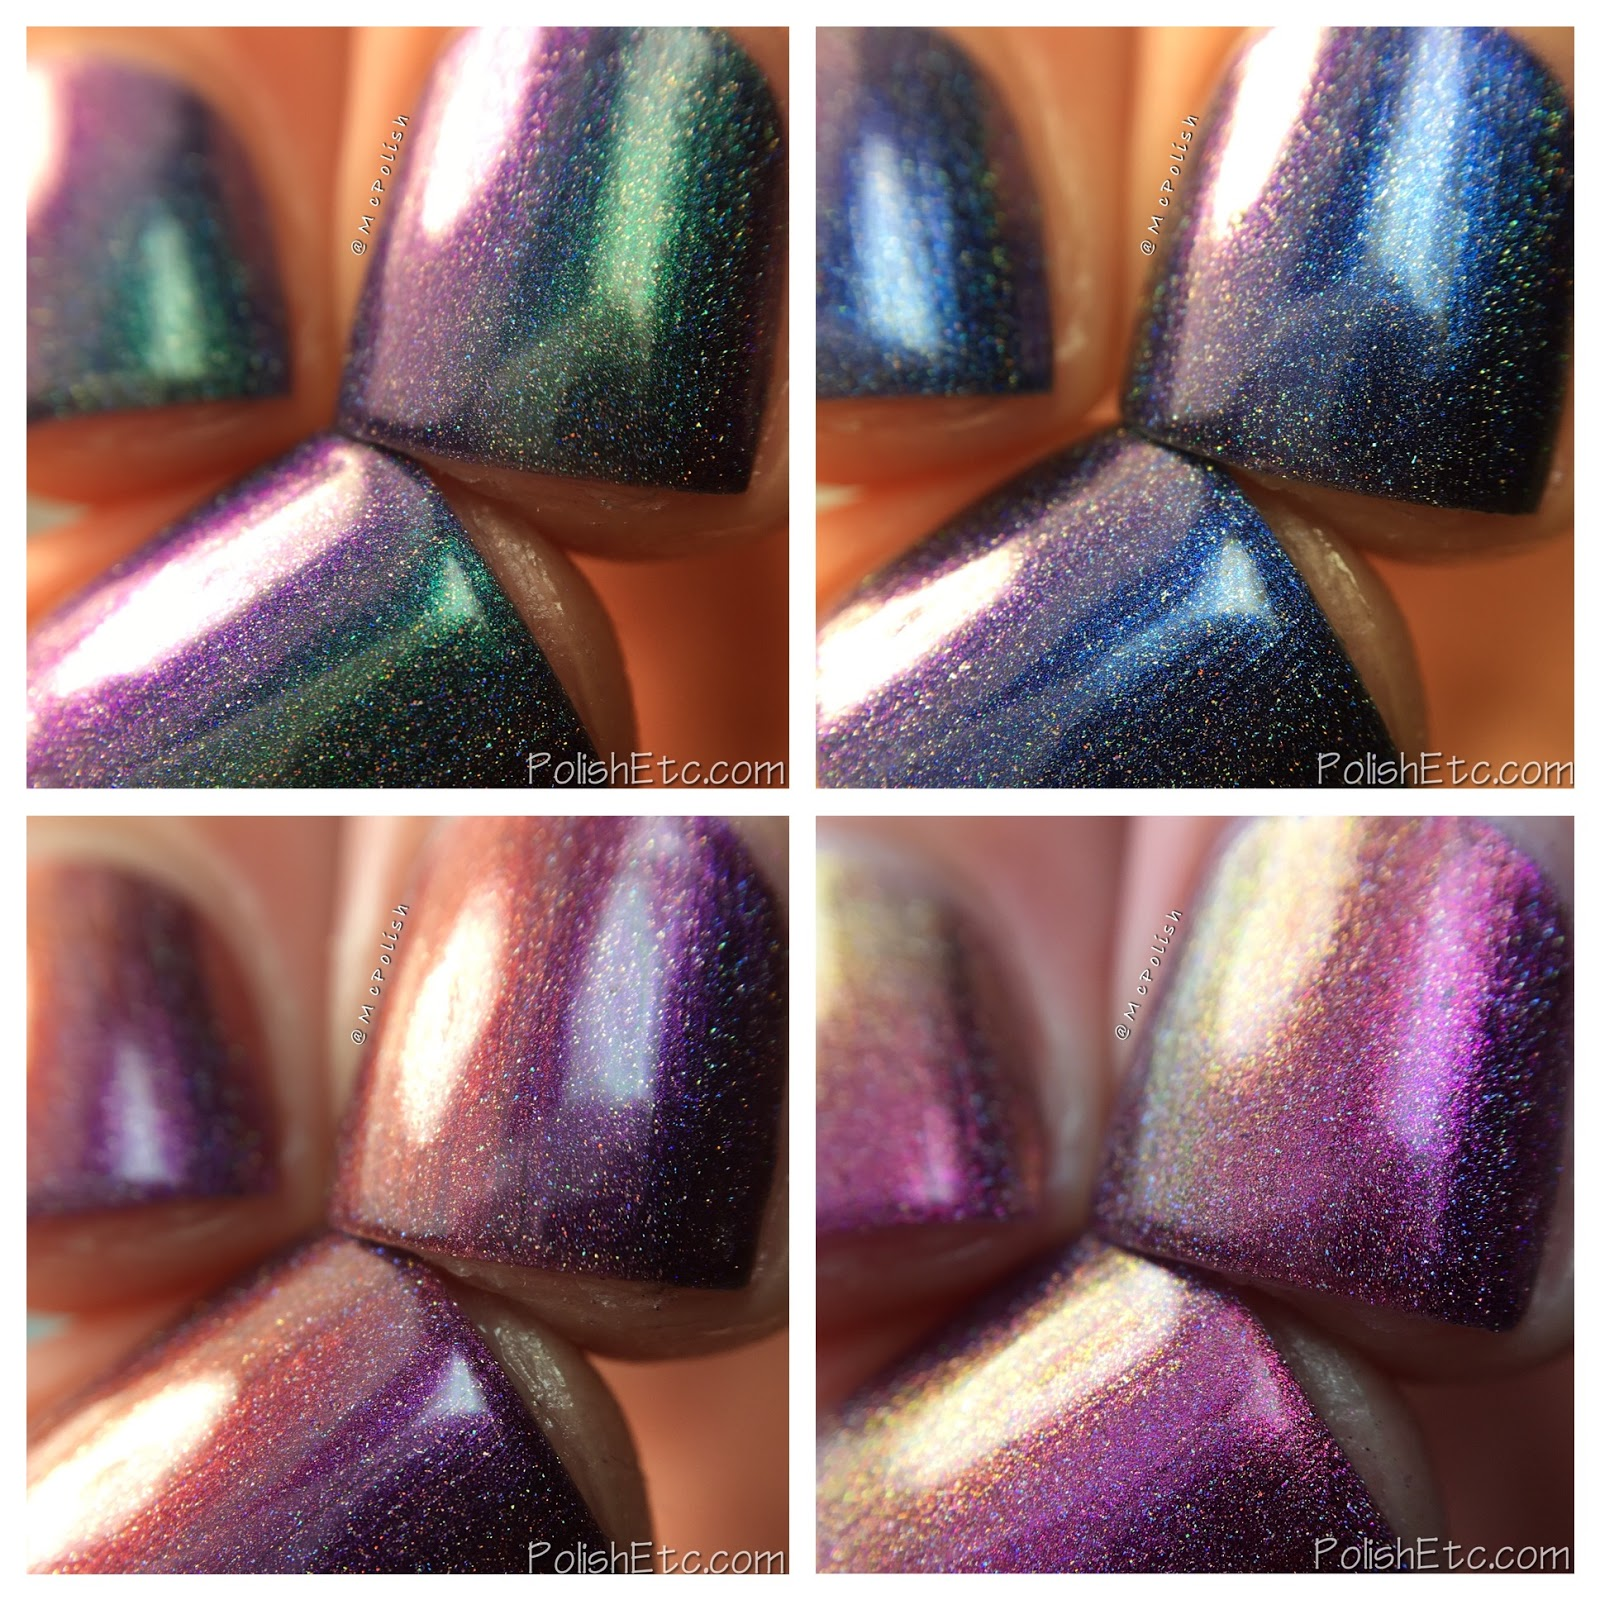 Top Shelf Lacquer - Cocktail Fun Holo'd Collection - McPolish